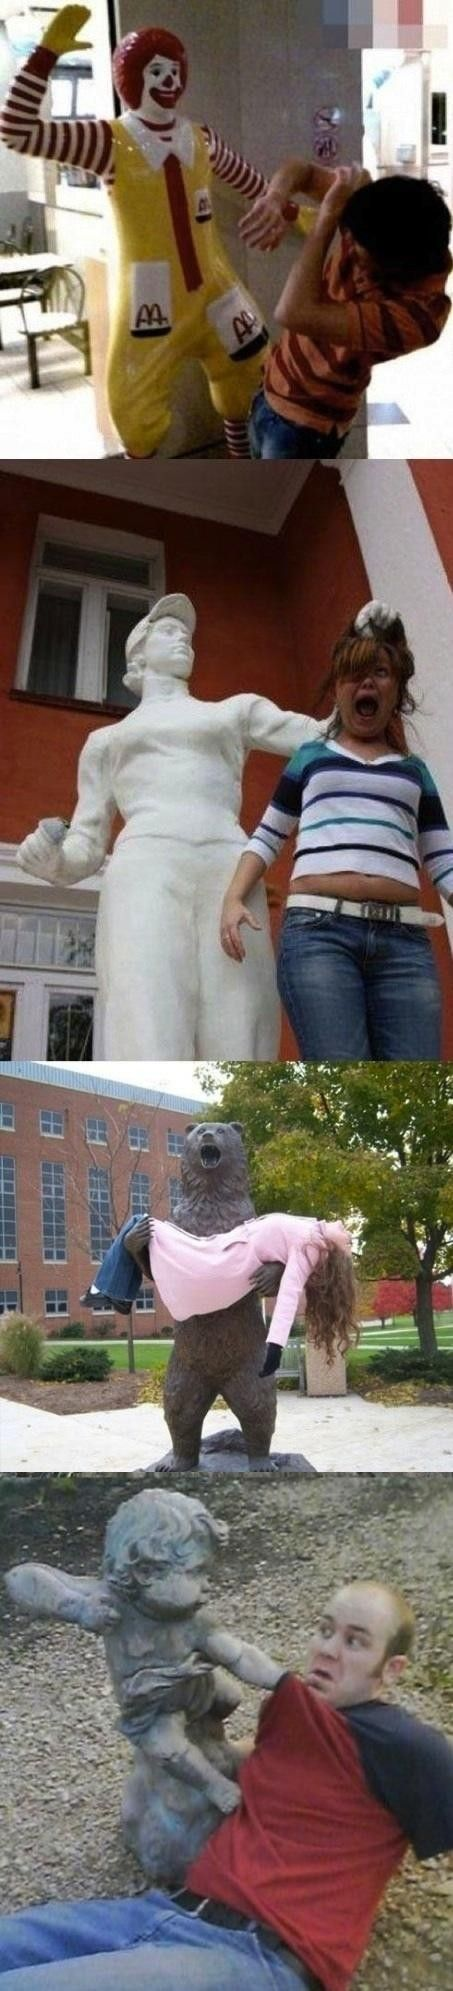 New thing on bucket list. everywhere I go, if I find a statue I MUST INTERACT!!!!!!!!!!!!